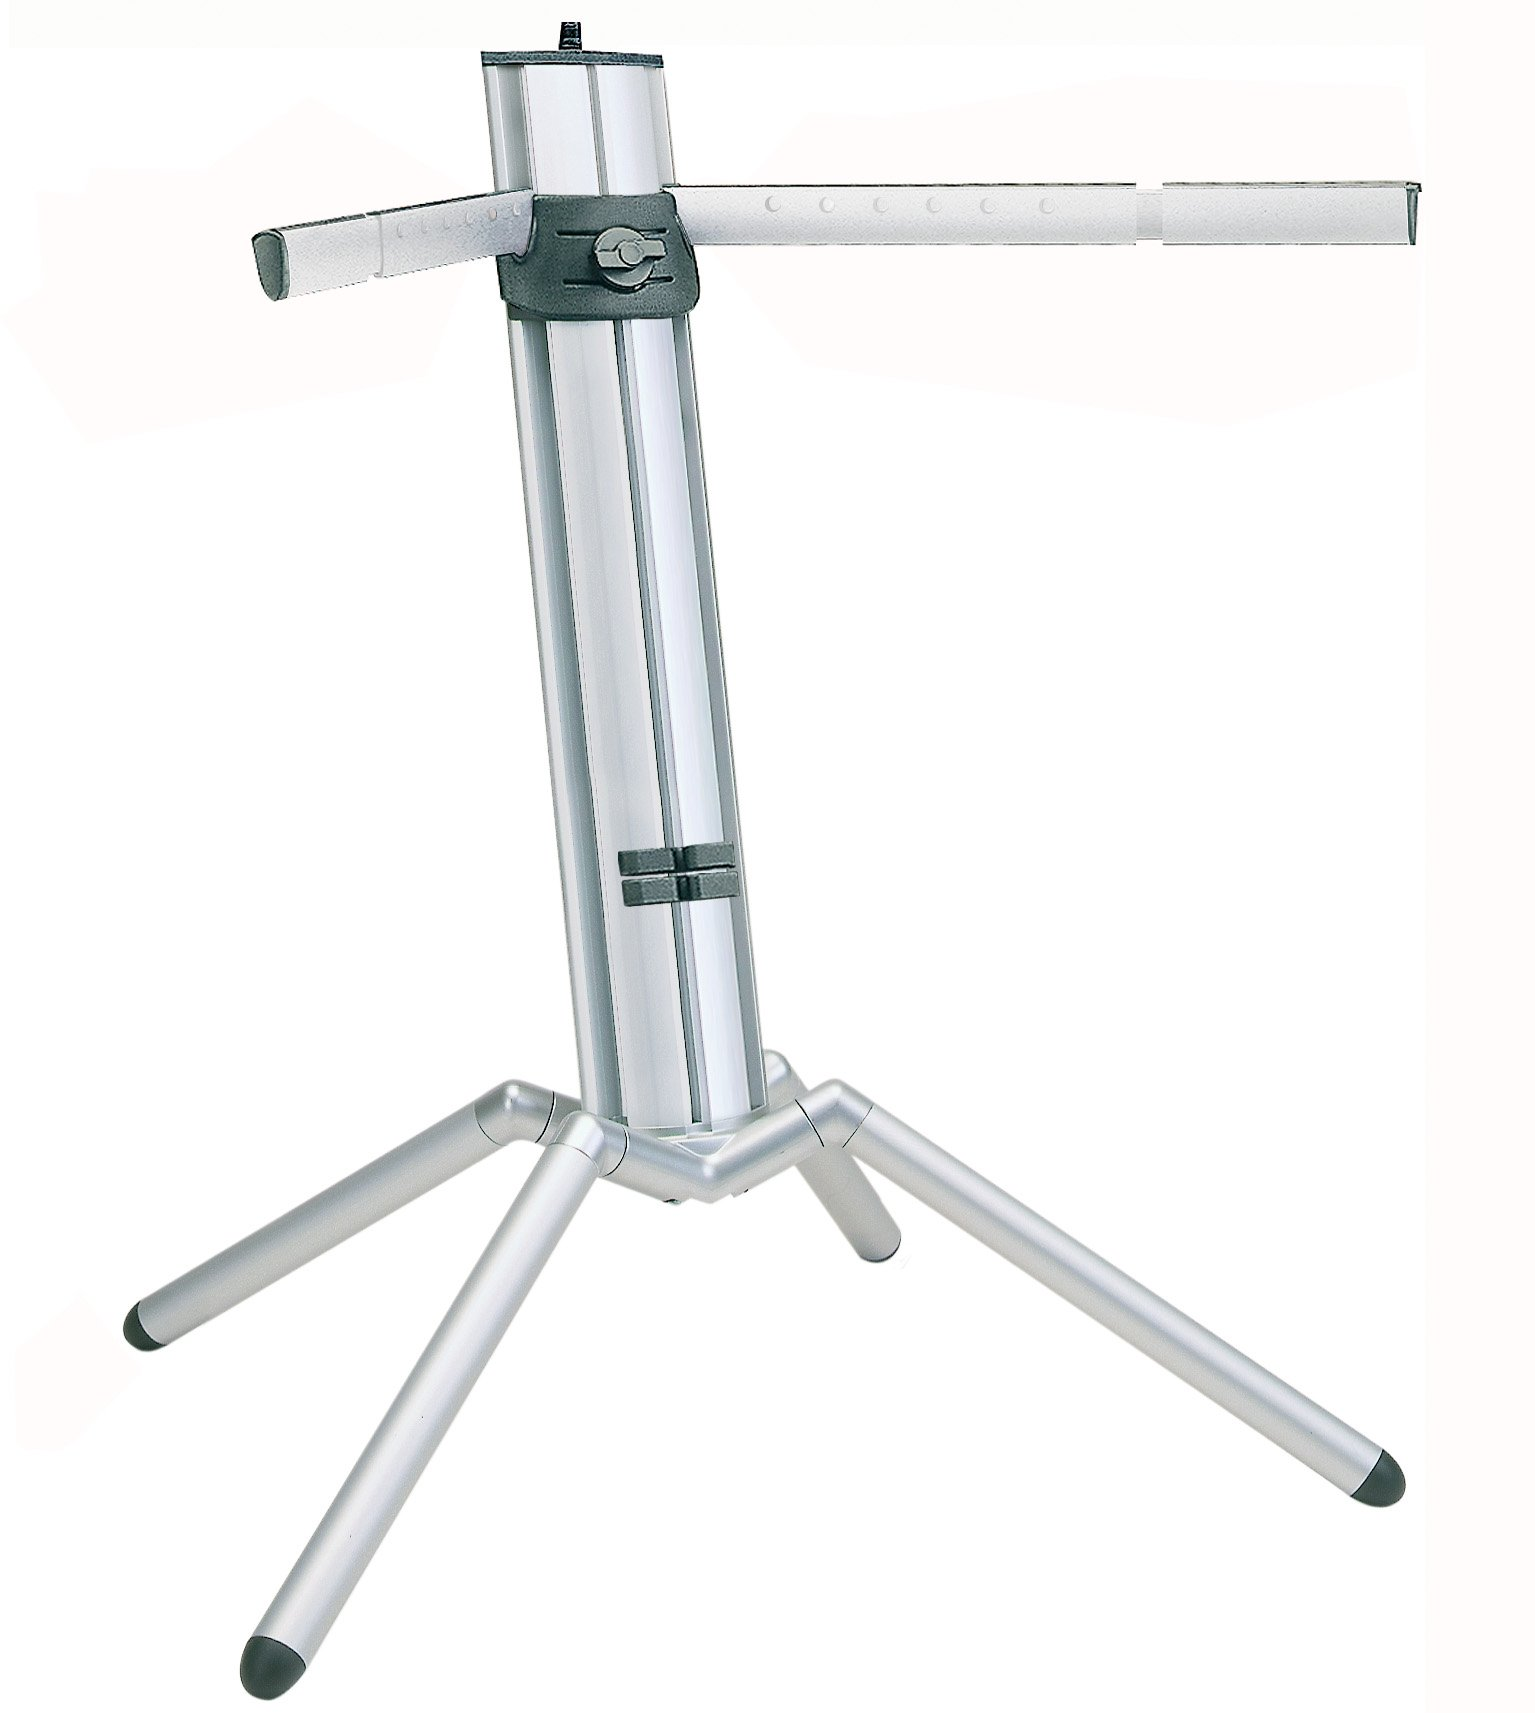 K&M Stands 18840.000.30 Keyboard stand -Baby-Spider Pro- anodized aluminum